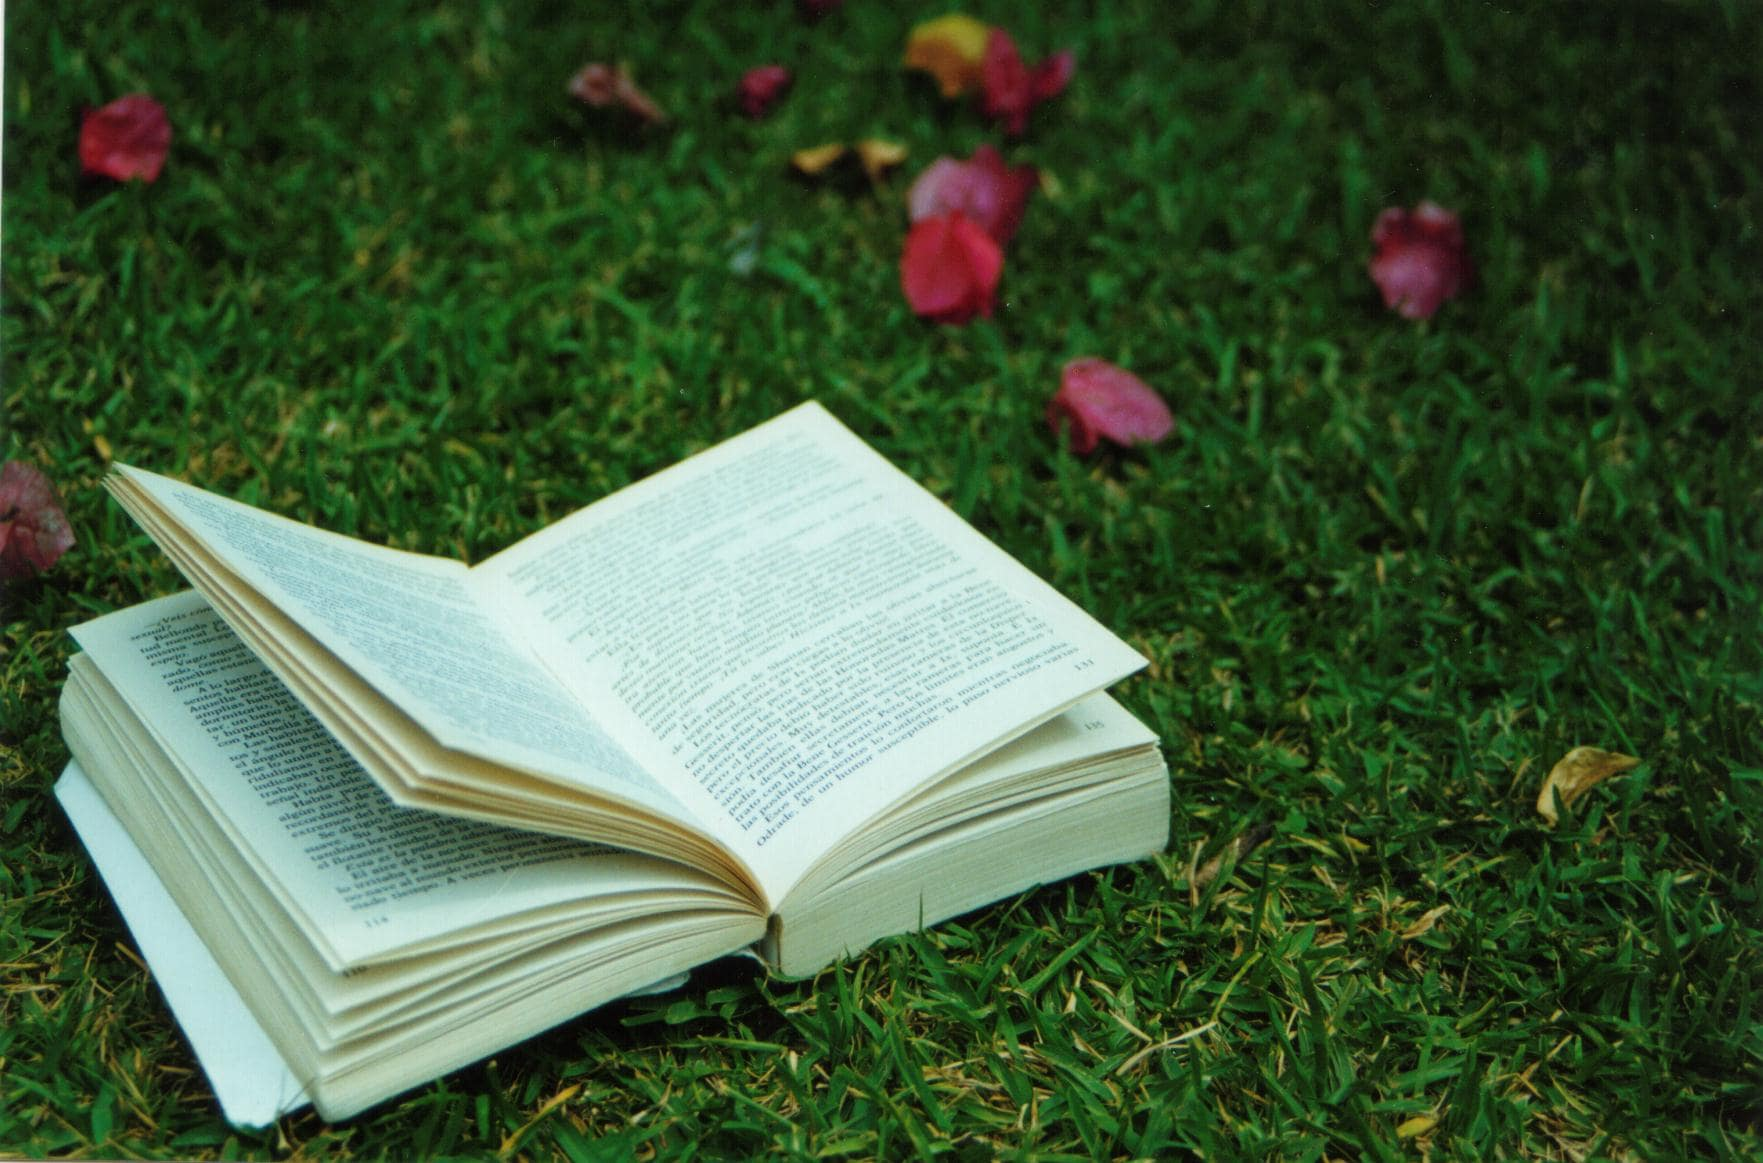 open-book-on-grass